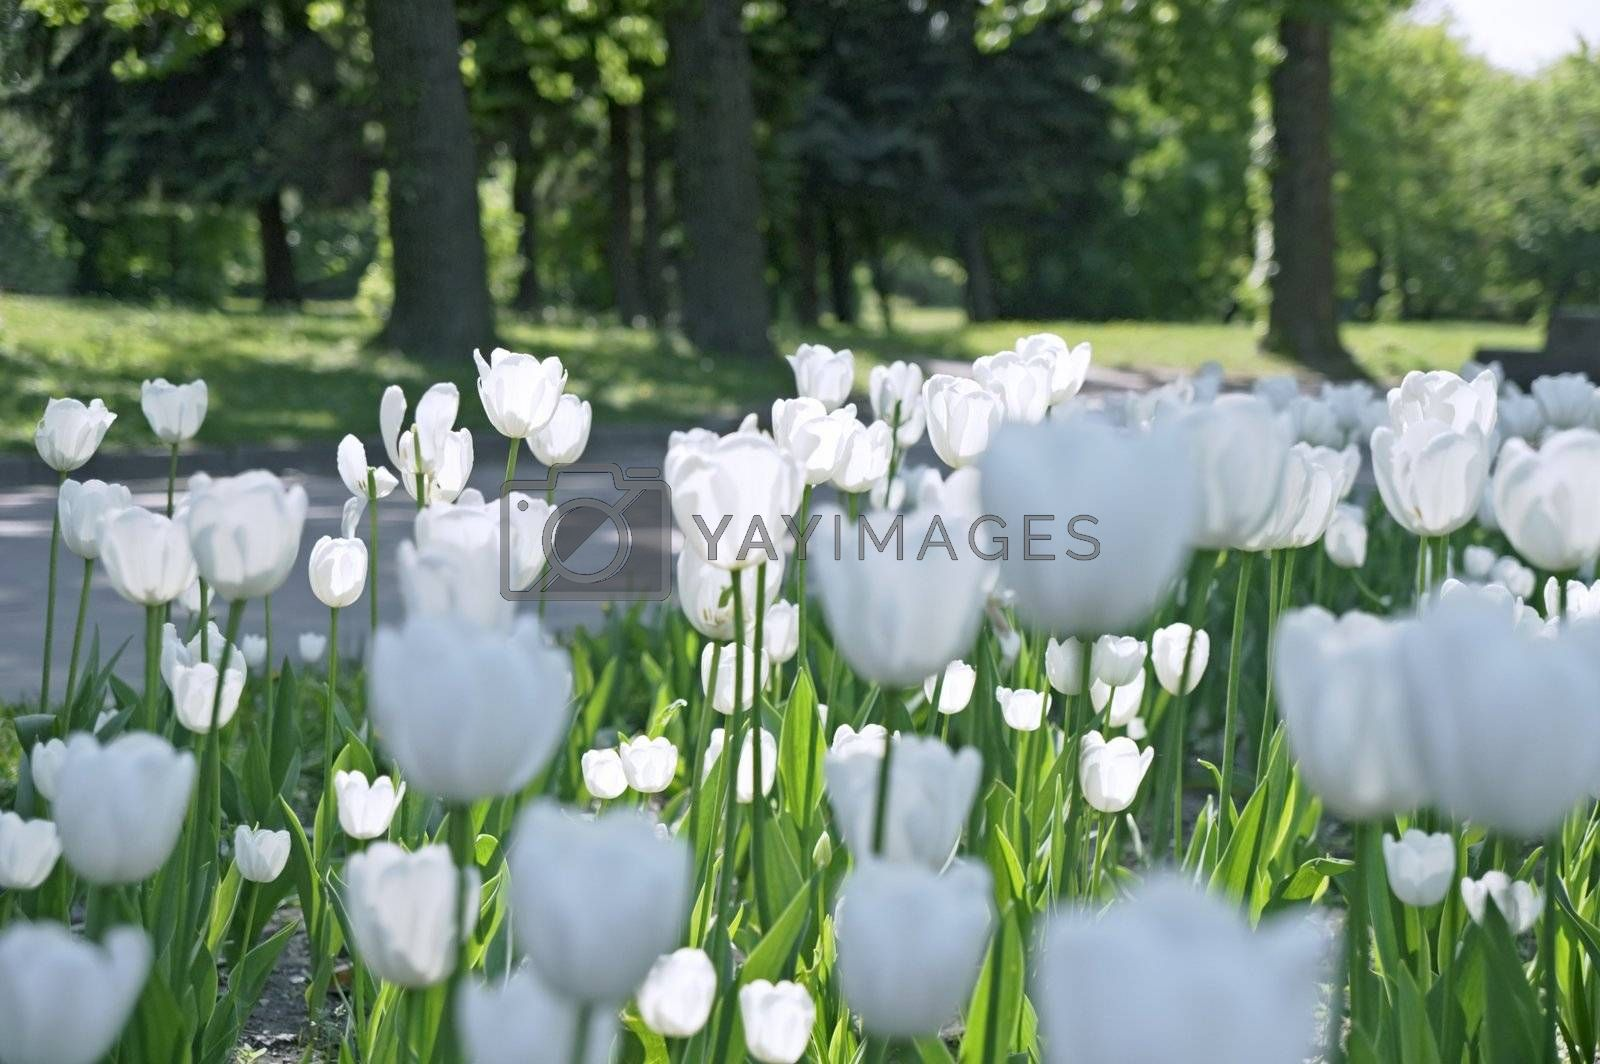 White tulips in city park in spring in Saint Petersburg, Russia.